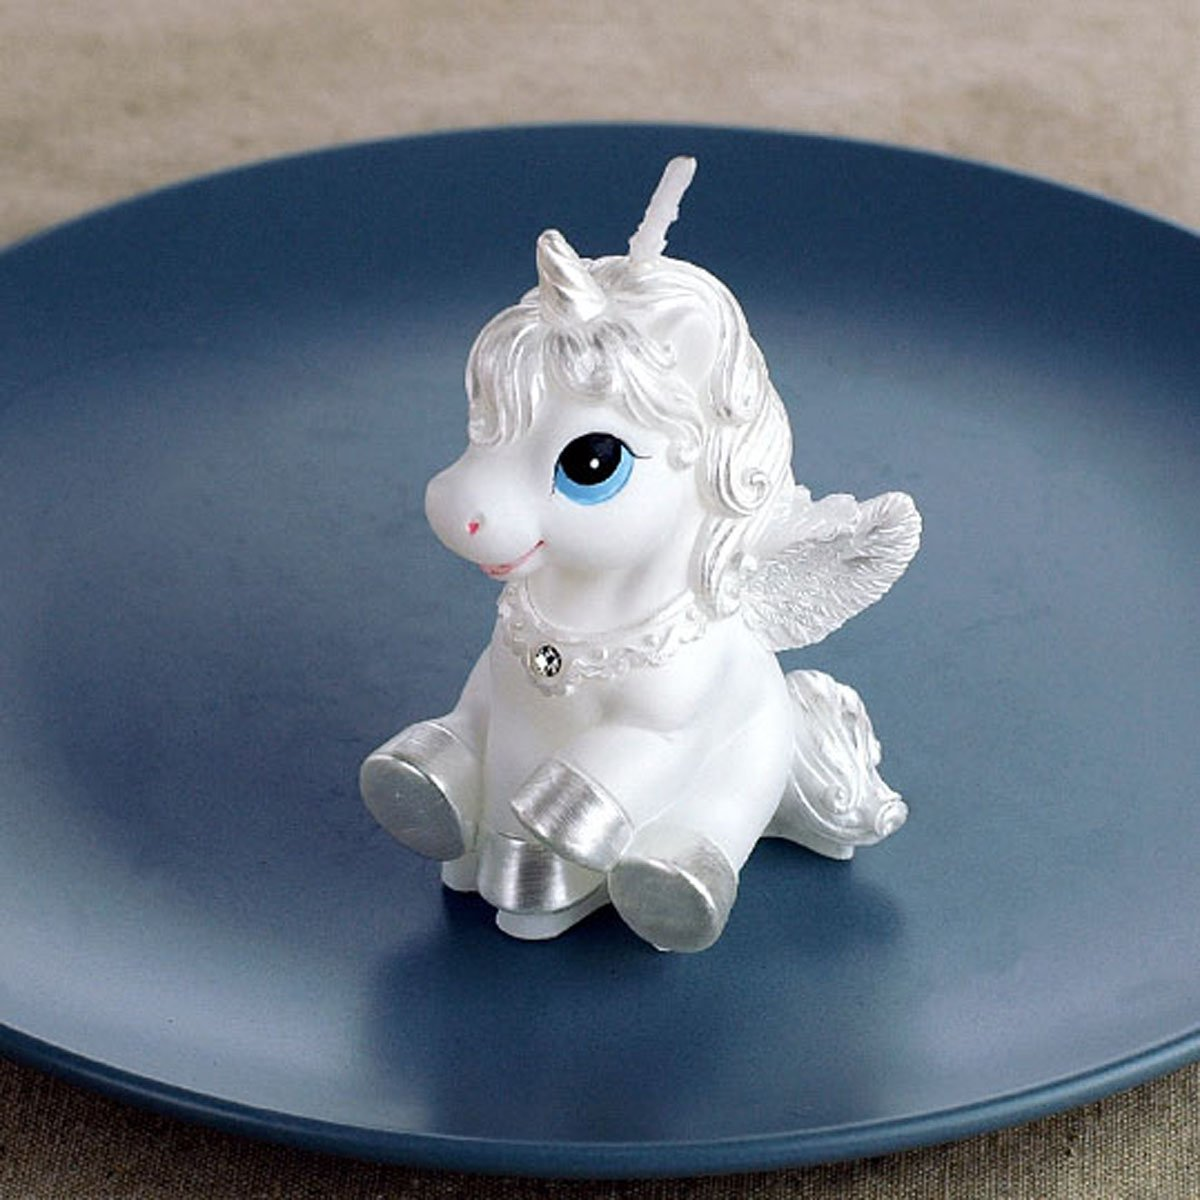 Cartoon Zodiac Pegasus / Unicorn / Horse Charming Gifts Party Candles Smokeless Candles Birthday Candles for Baby Shower and Wedding Favor Keepsake Favor (5)